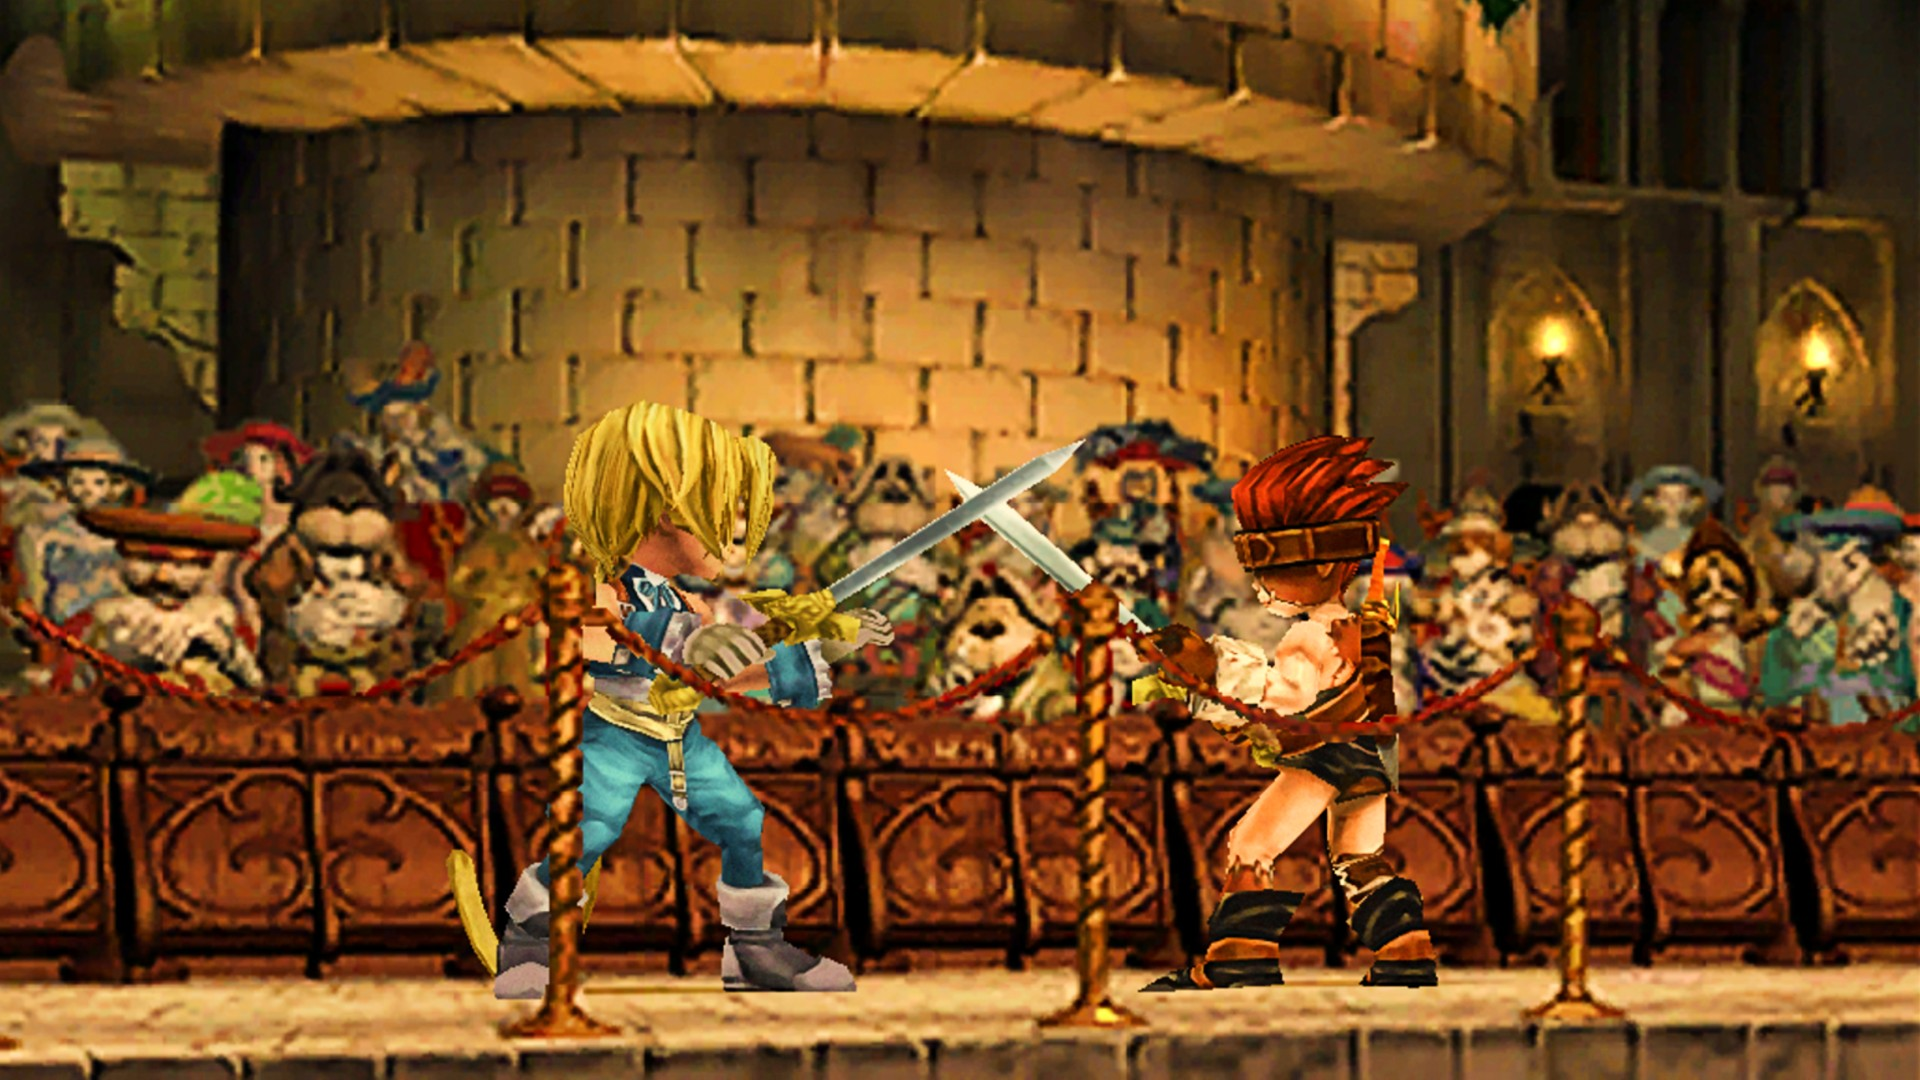 Final Fantasy 9 is getting an animated series